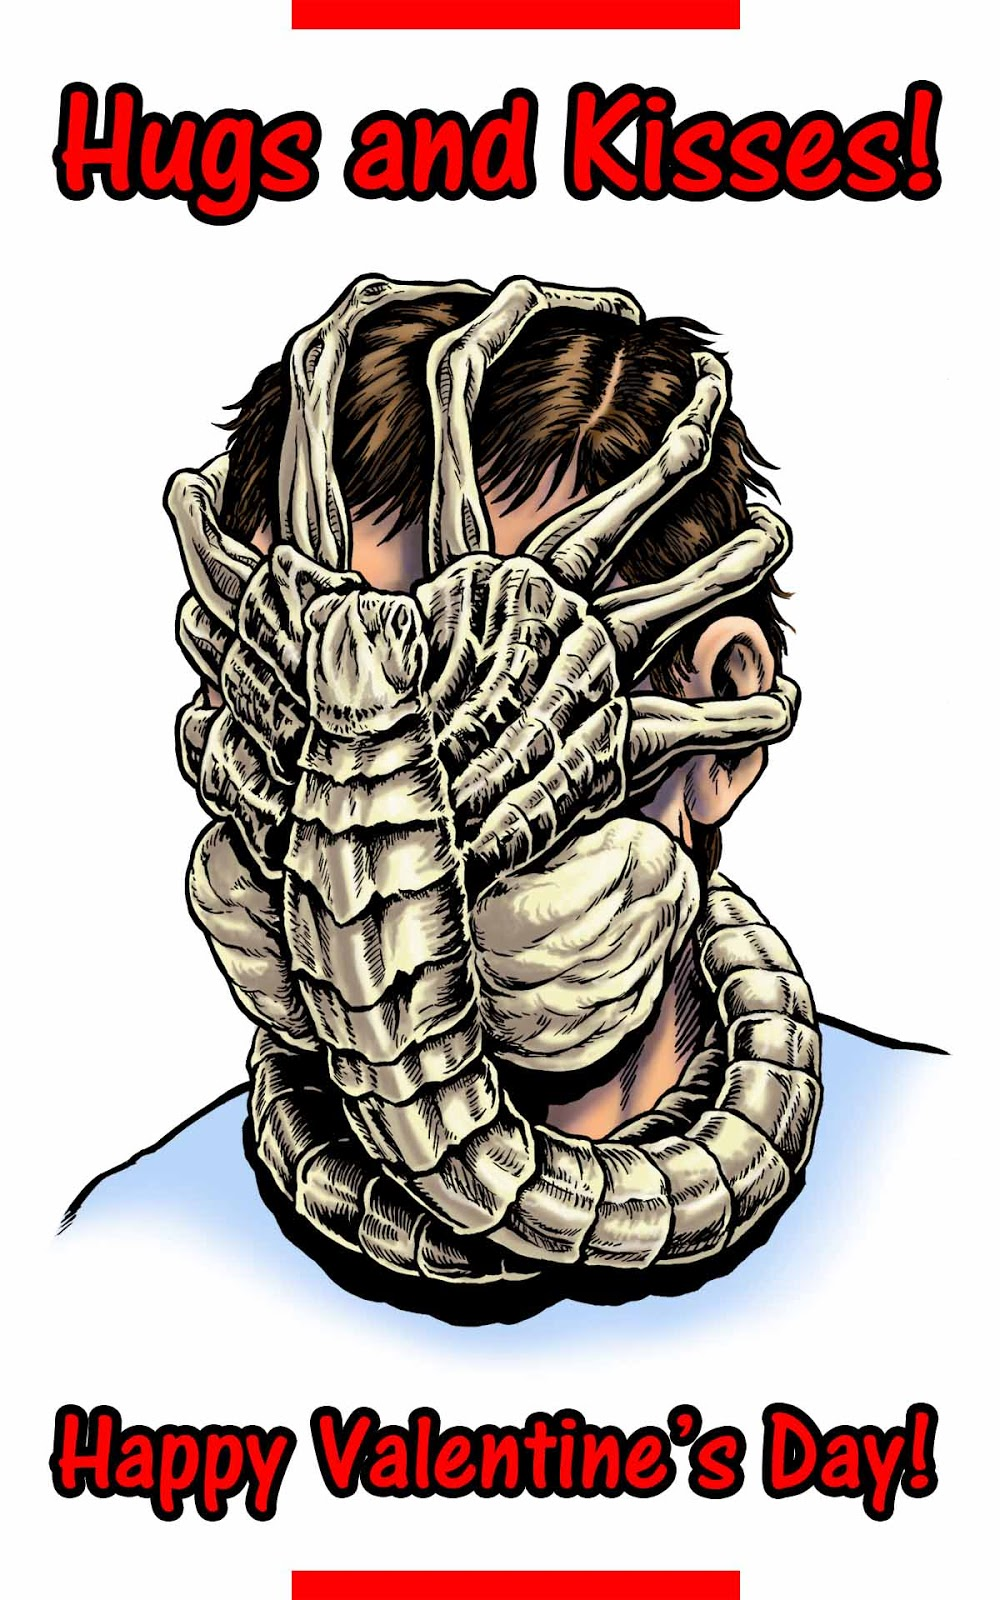 Hugs and kisses facehugger style